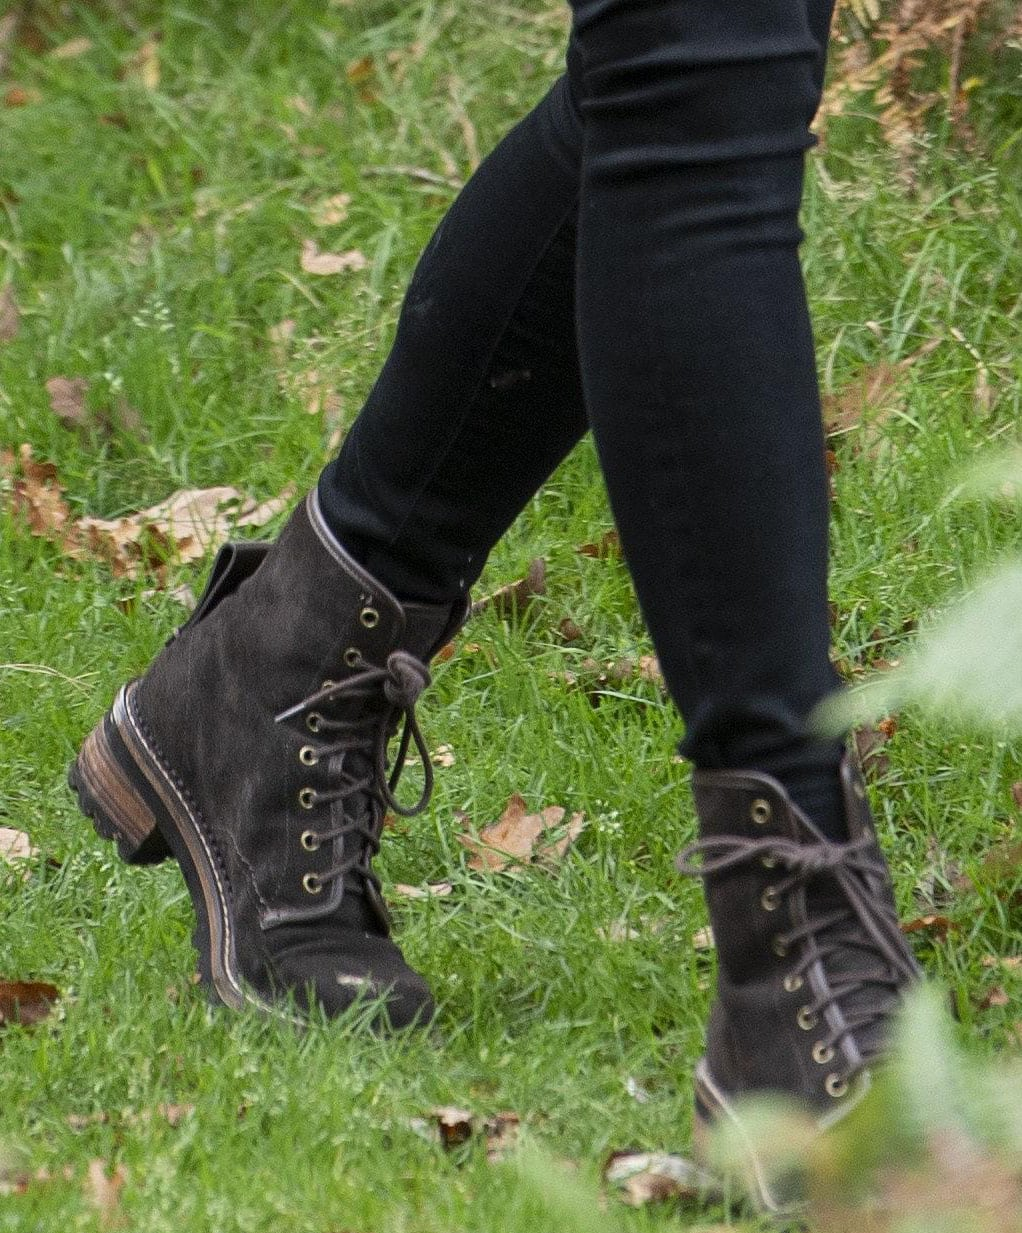 Kate Middleton completes her outdoor look with brown suede boots from See by Chloe